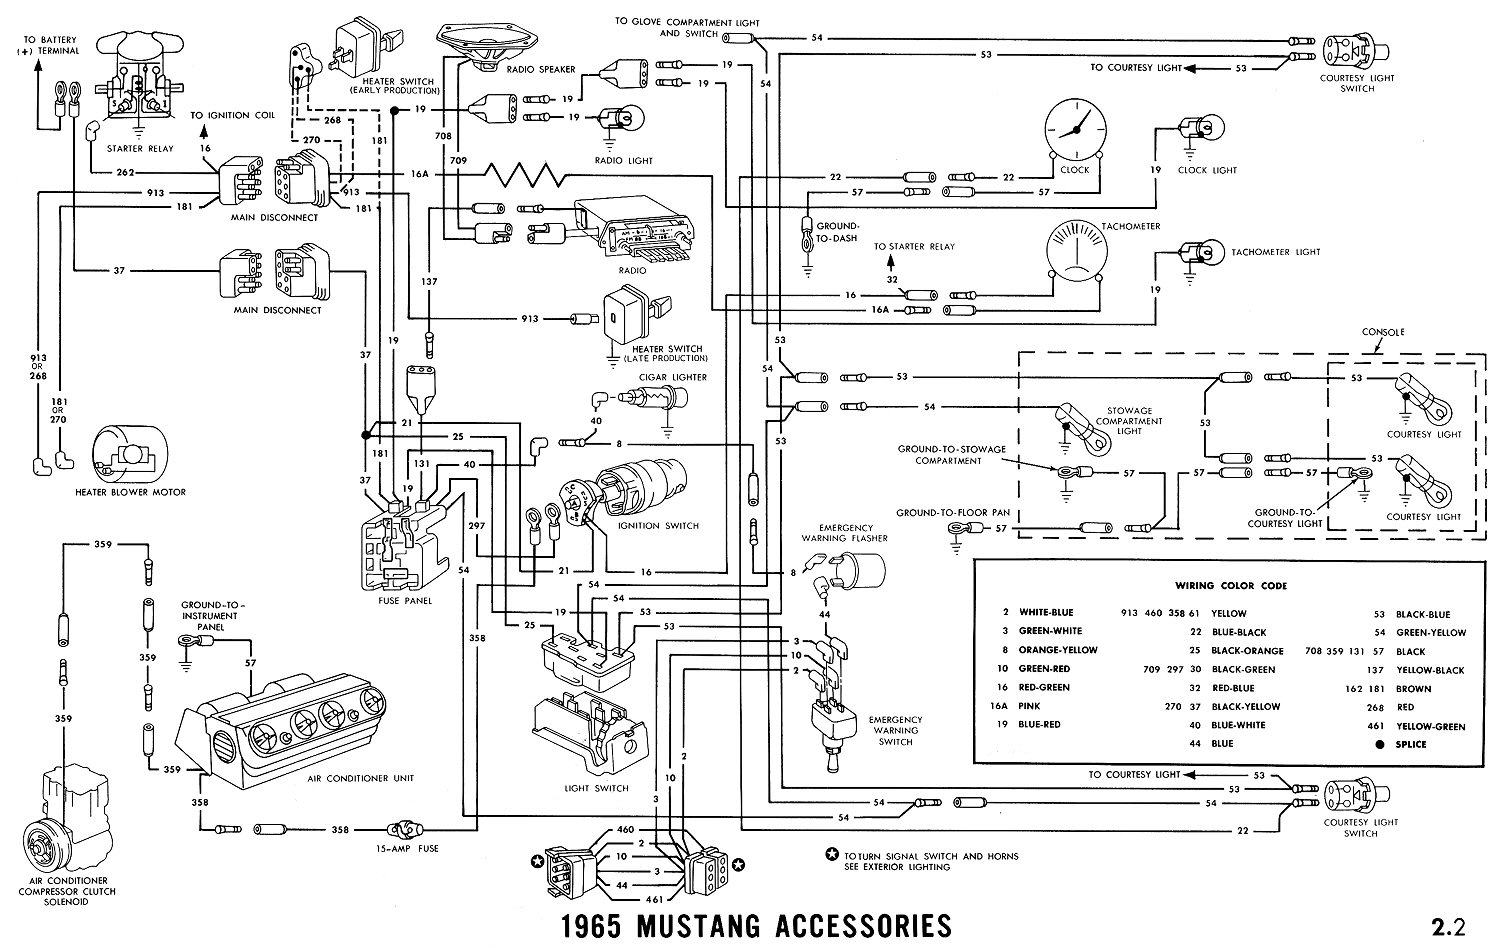 1965 Chevrolet Wiring Diagram Schematic Harness Mustang Diagrams Average Joe Restoration Accessories Pictorial Or Air Conditioner